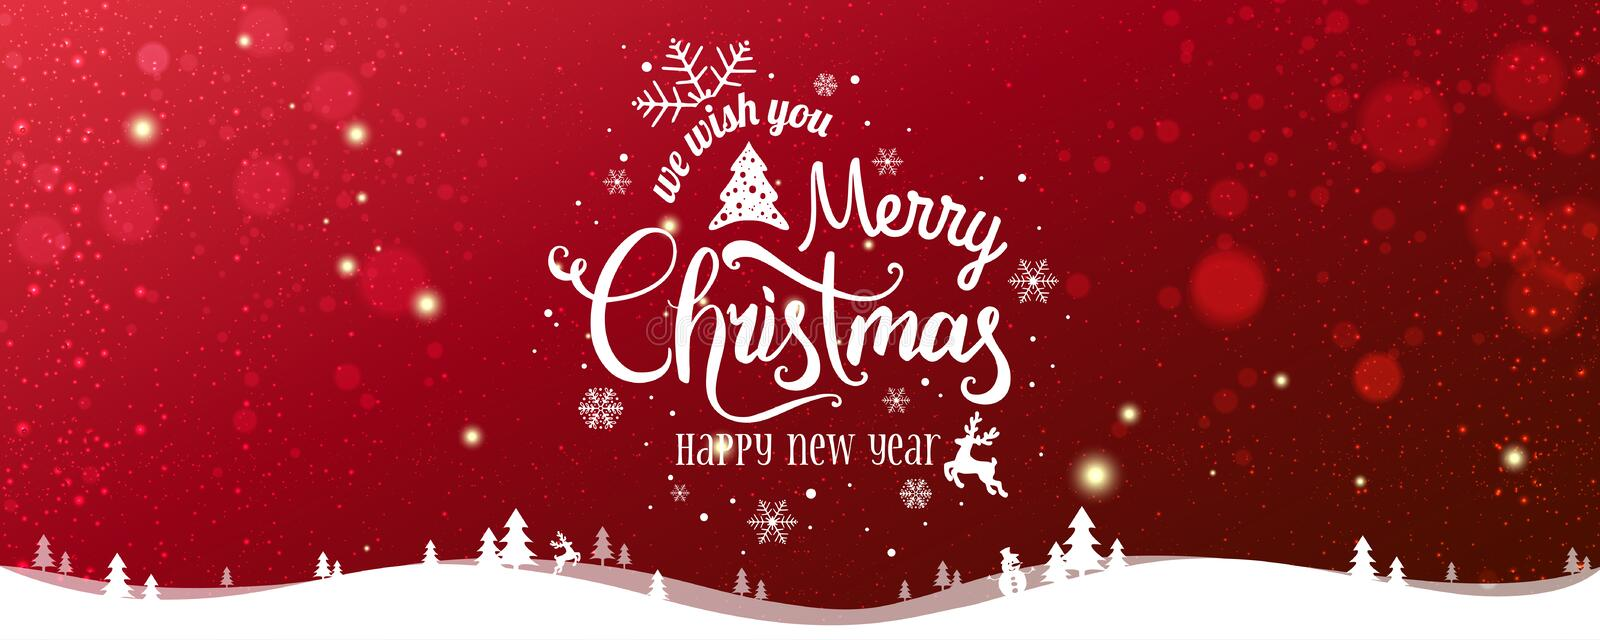 Christmas and New Year Typographical on snowy Xmas background with winter landscape with snowflakes, light, stars. Merry Christmas card. Vector Illustration stock illustration